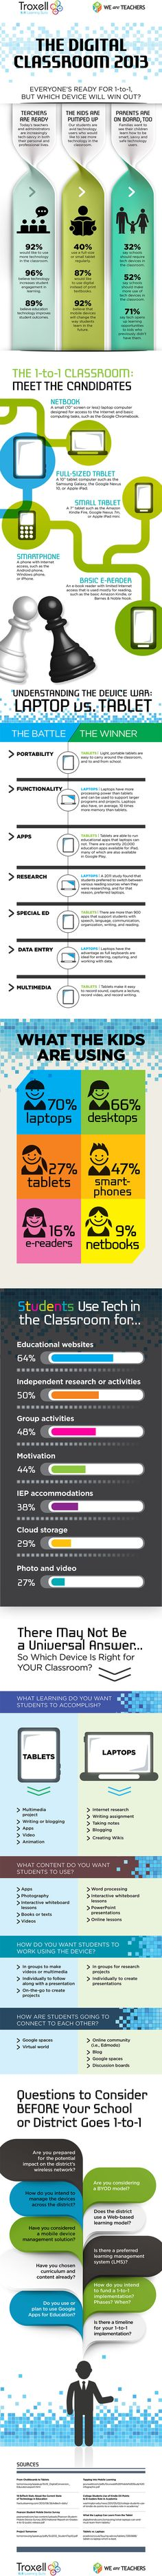 The Digital #Classroom 2013 #edtech #education #eLearning